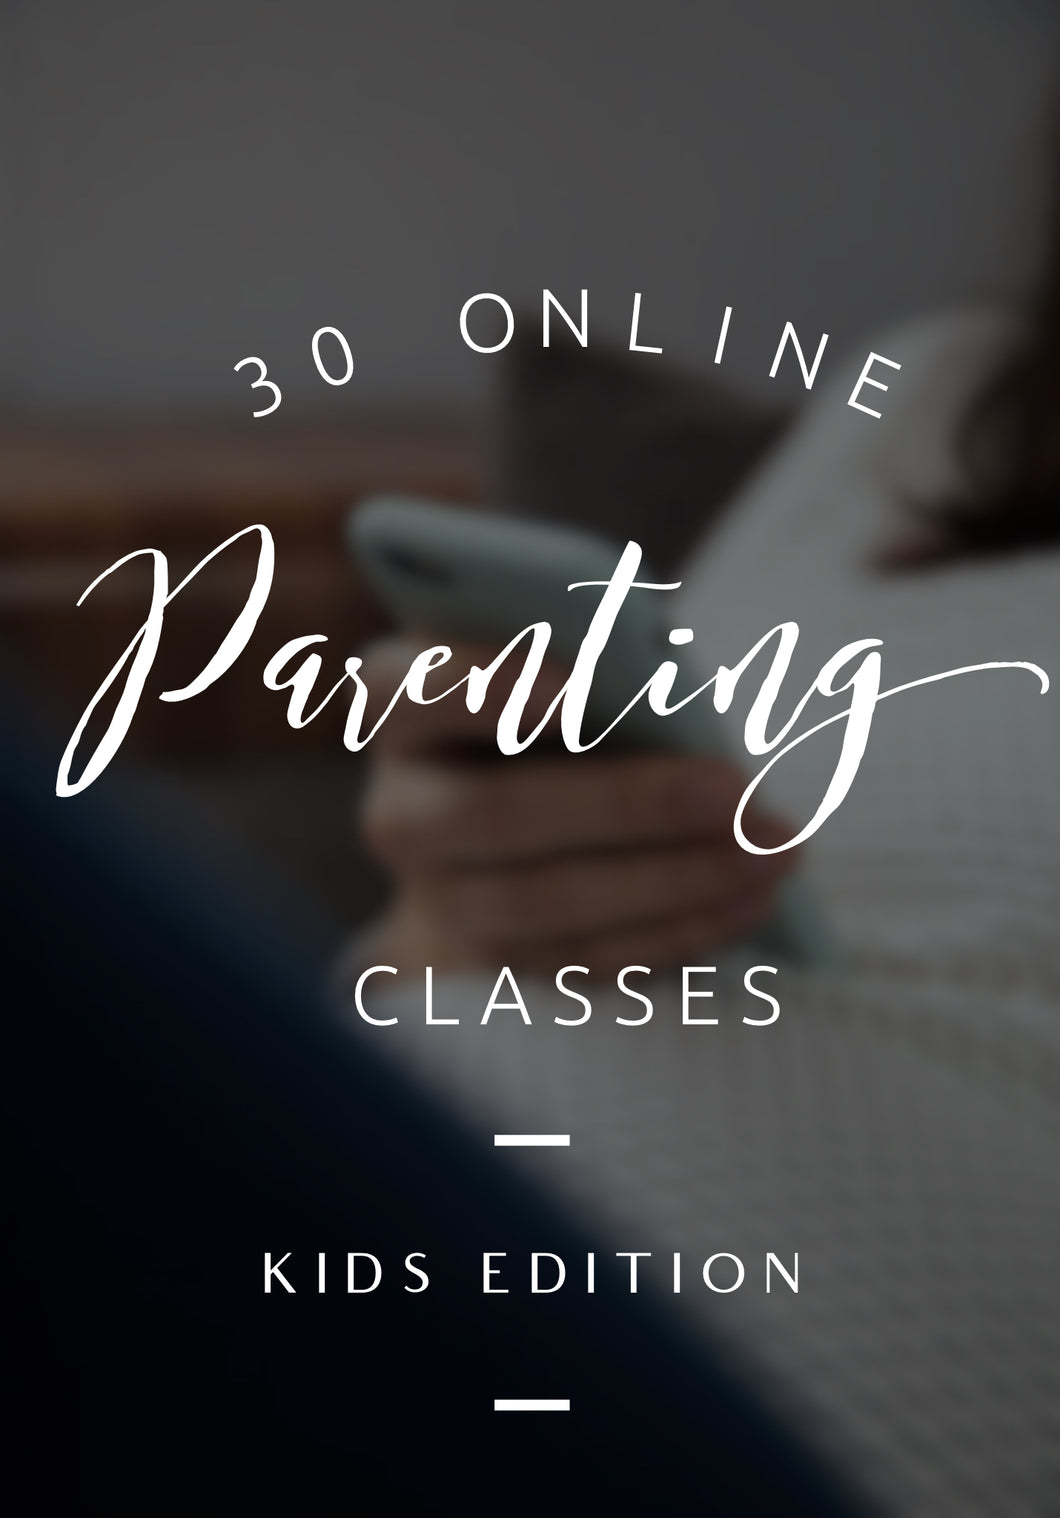 30 ONLINE PARENTING CLASSES - KIDS EDITION